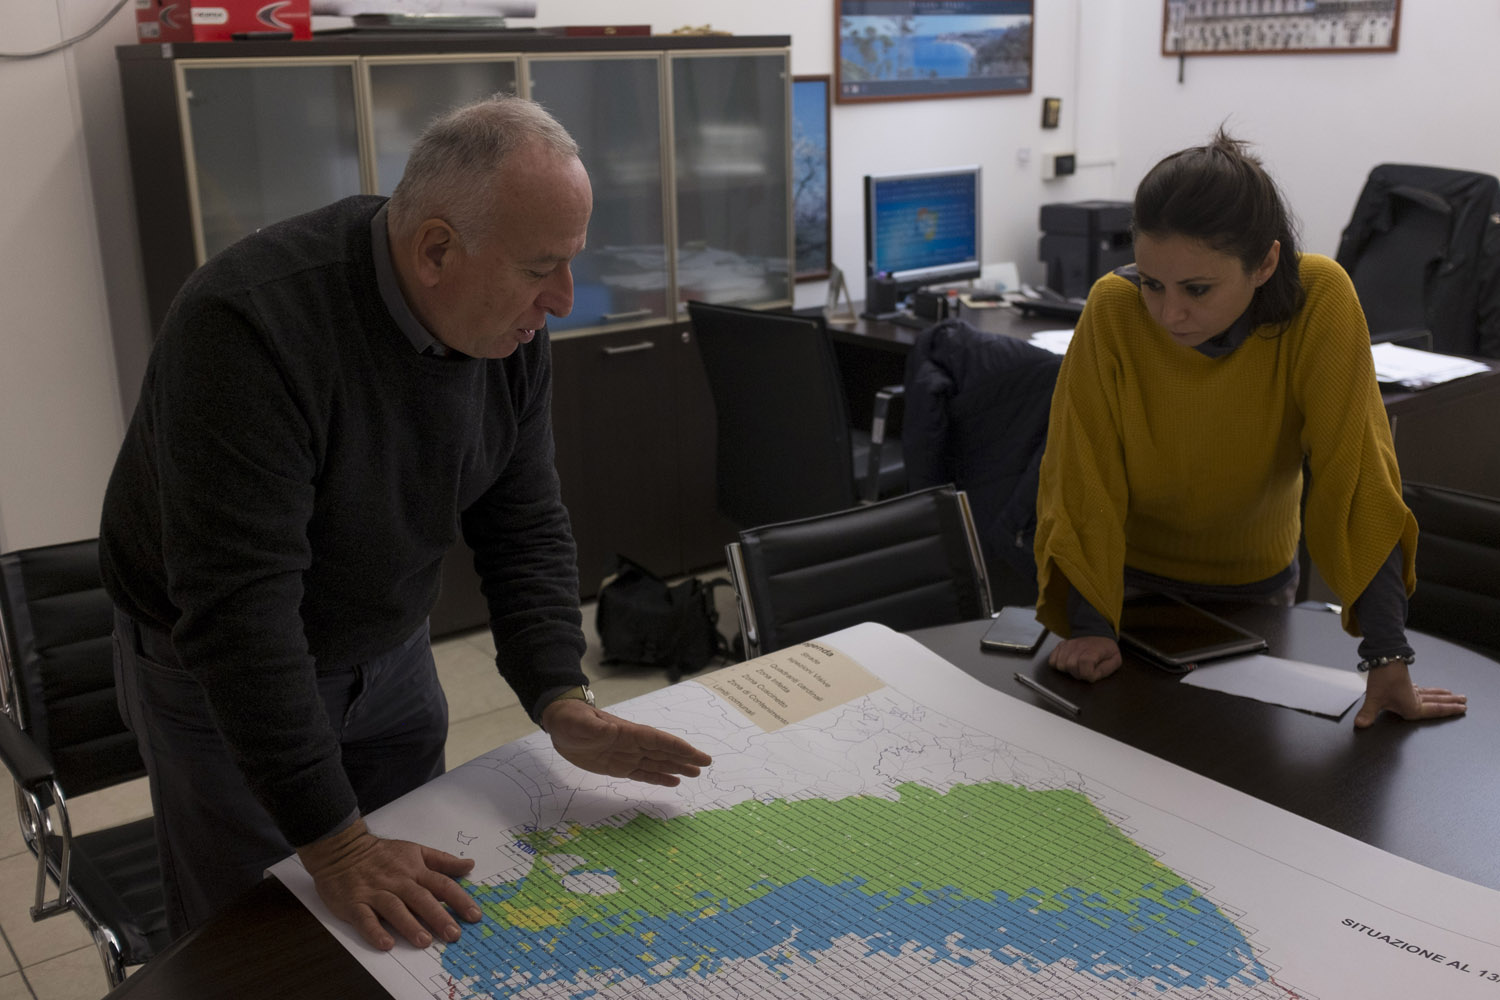 Discussing the plan to monitor the outbreak of Xylella fastidiosa in the offices of ARIF, Puglia's forestry agency, in Bari. Vast resources are being invested in monitoring the spread of the bacteria, which the European Union regards as a threat to all of agriculture that has to be contained at all costs because of its ability to evolve and adapt to a wide range of plants. (2016)